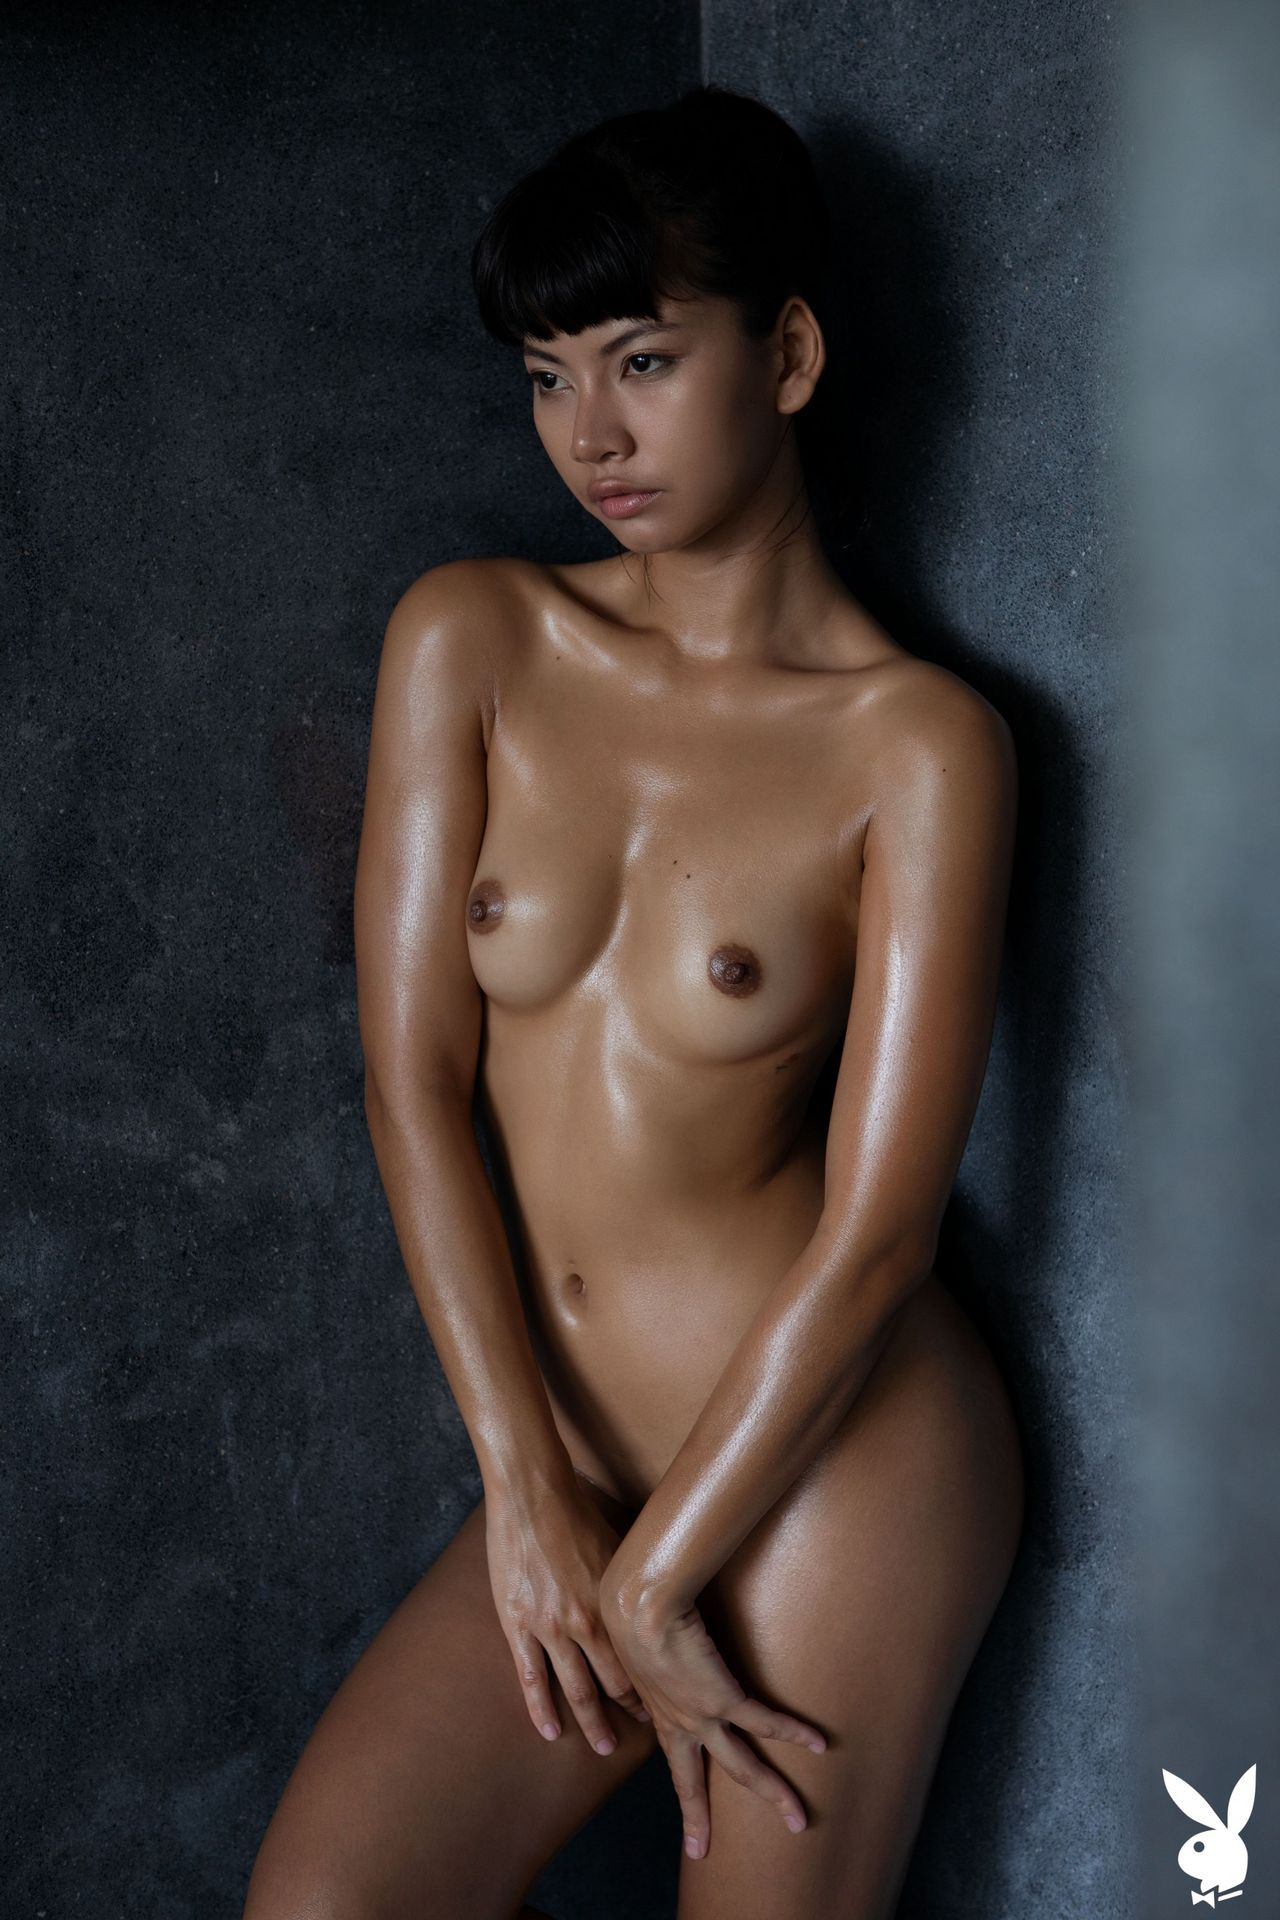 Cara Pin Nude Soft Shower thefappening.nu 2